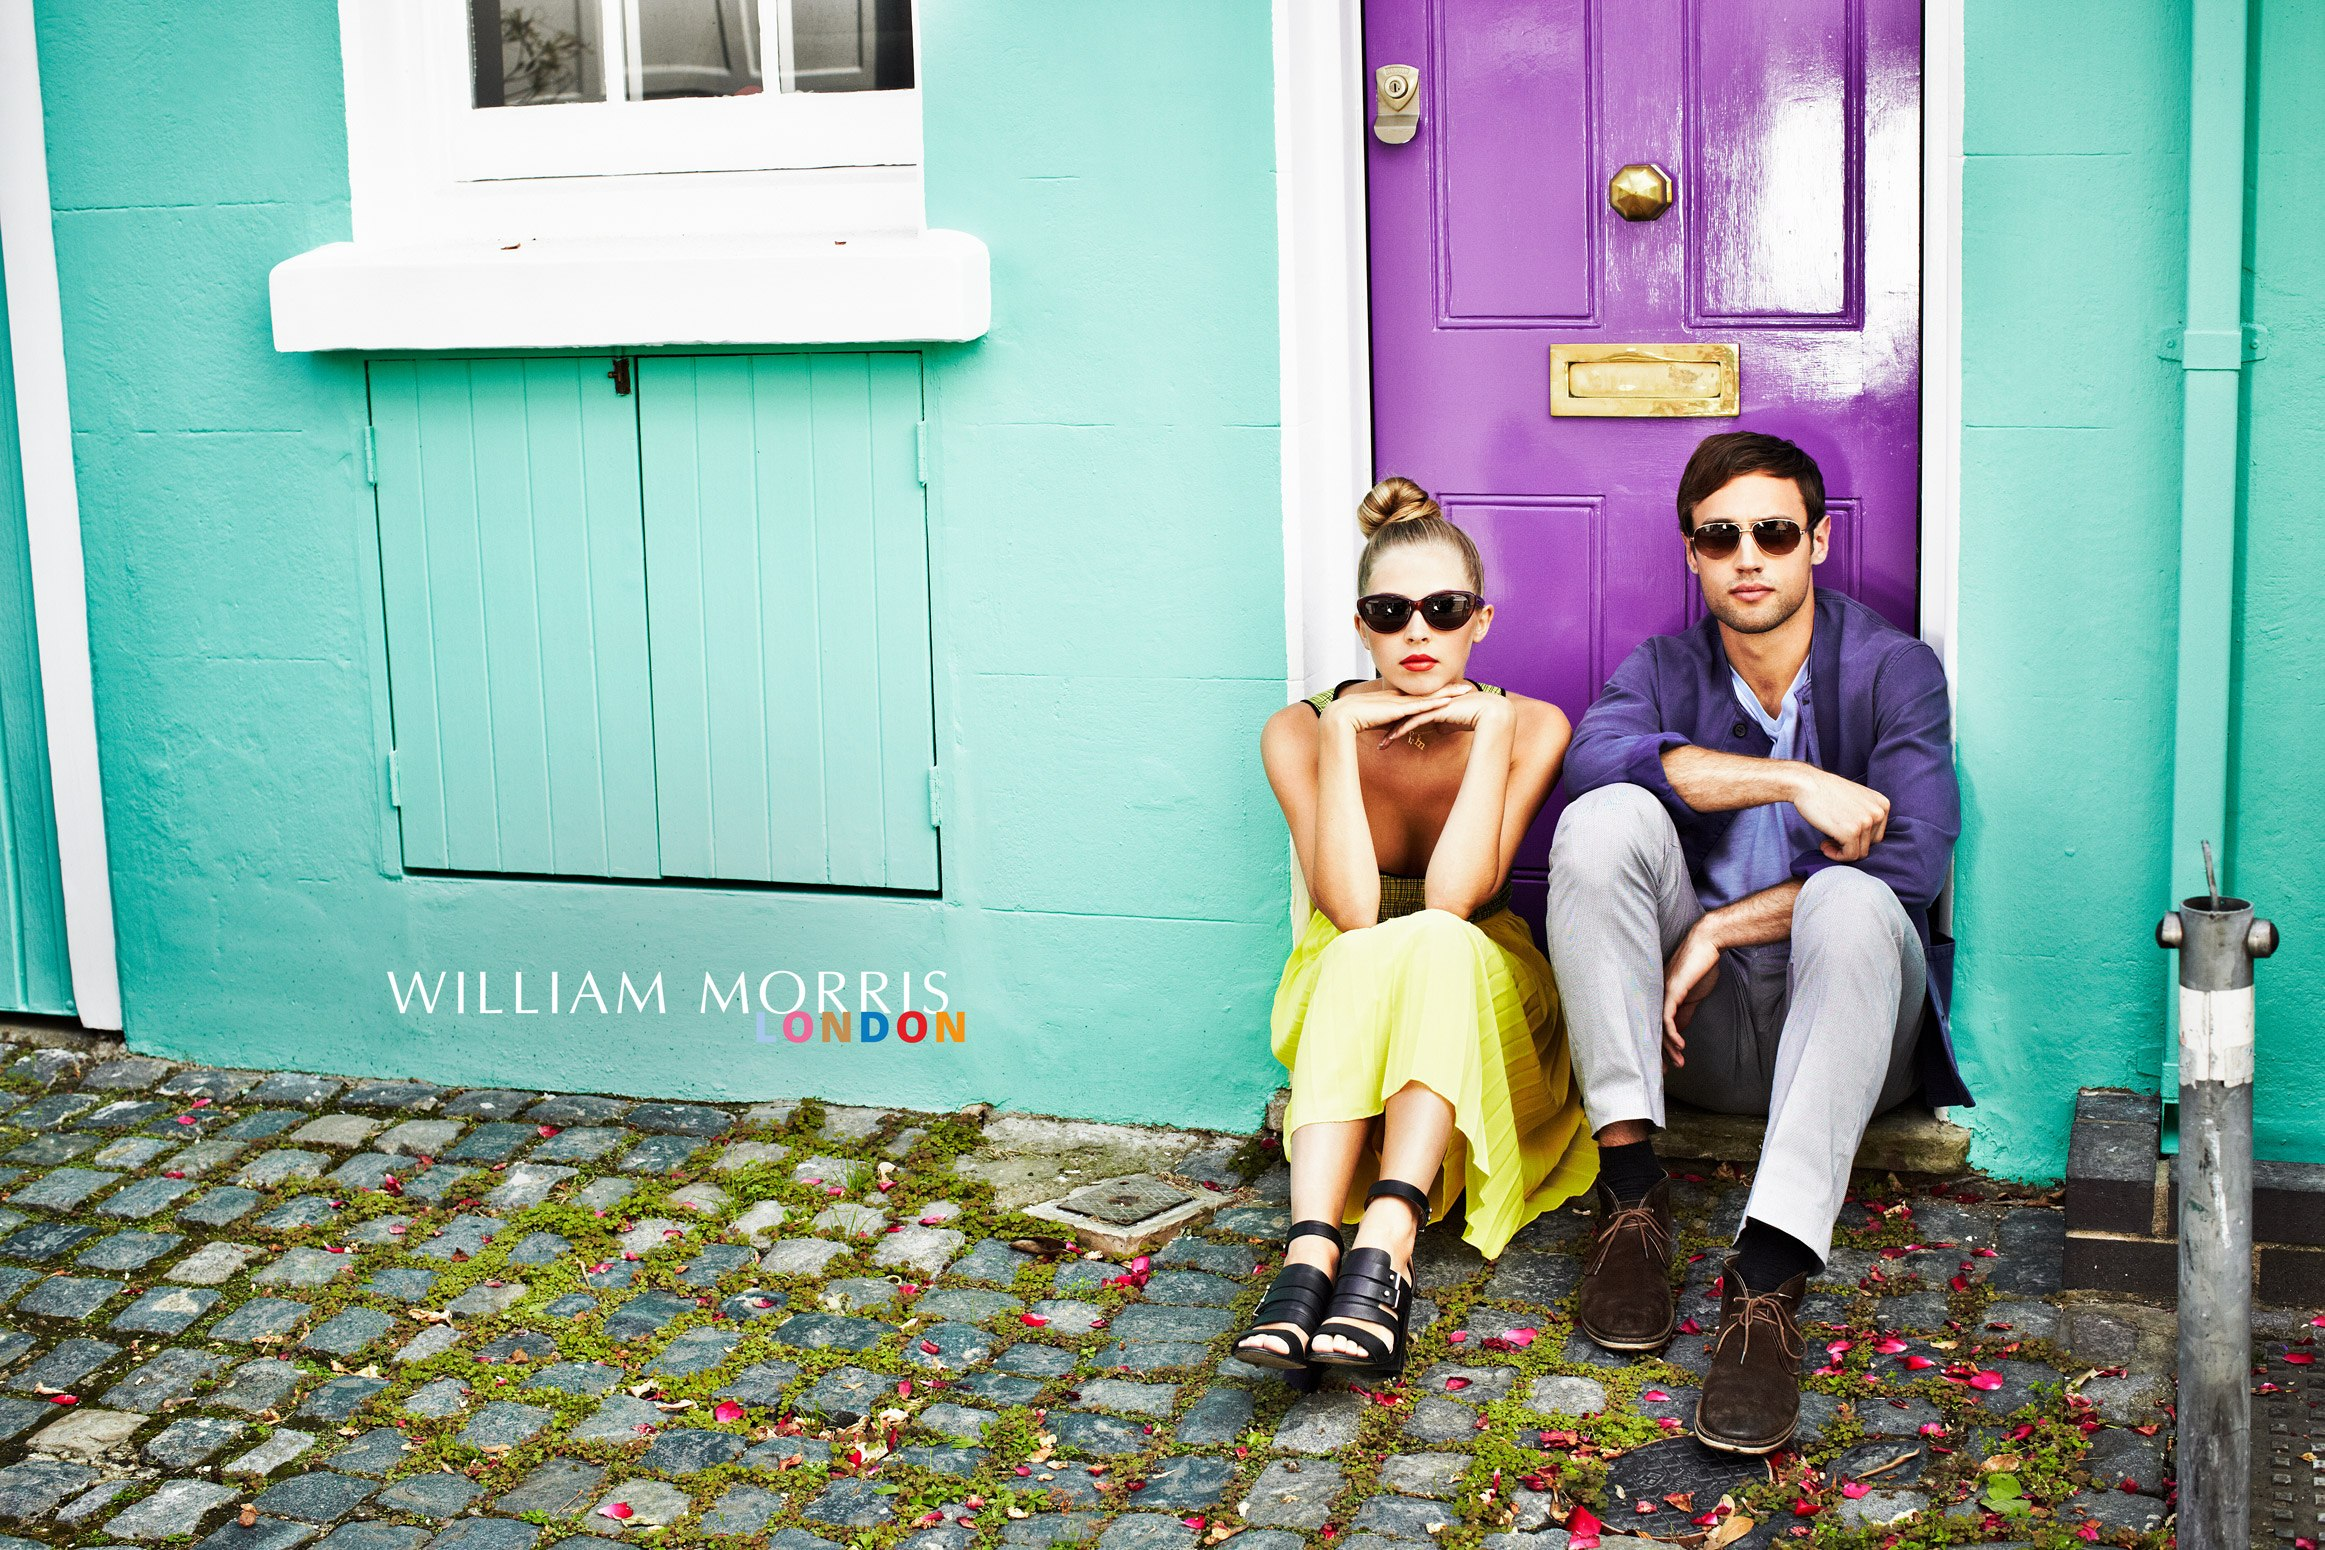 william-morris-ruth-rose-fashion-glasses-accessories-london-hermione-corfield-london-tourist-notting-hill-chelsea-fashion-boy-girl-colour-house-51